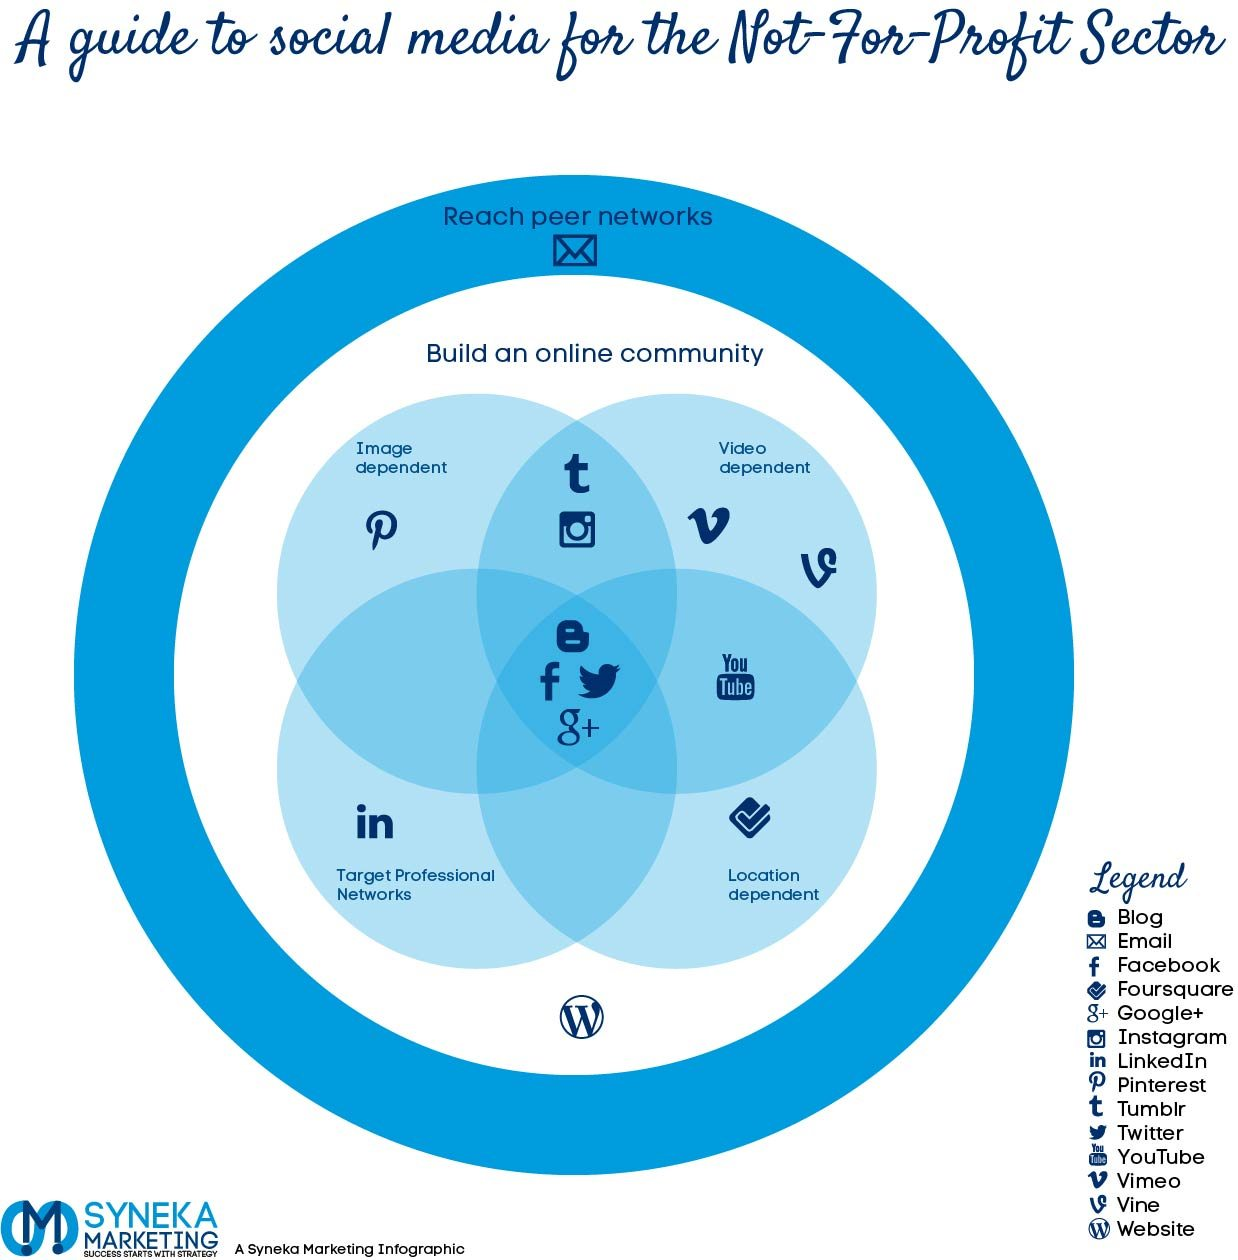 Not-for-profit Social Media Map